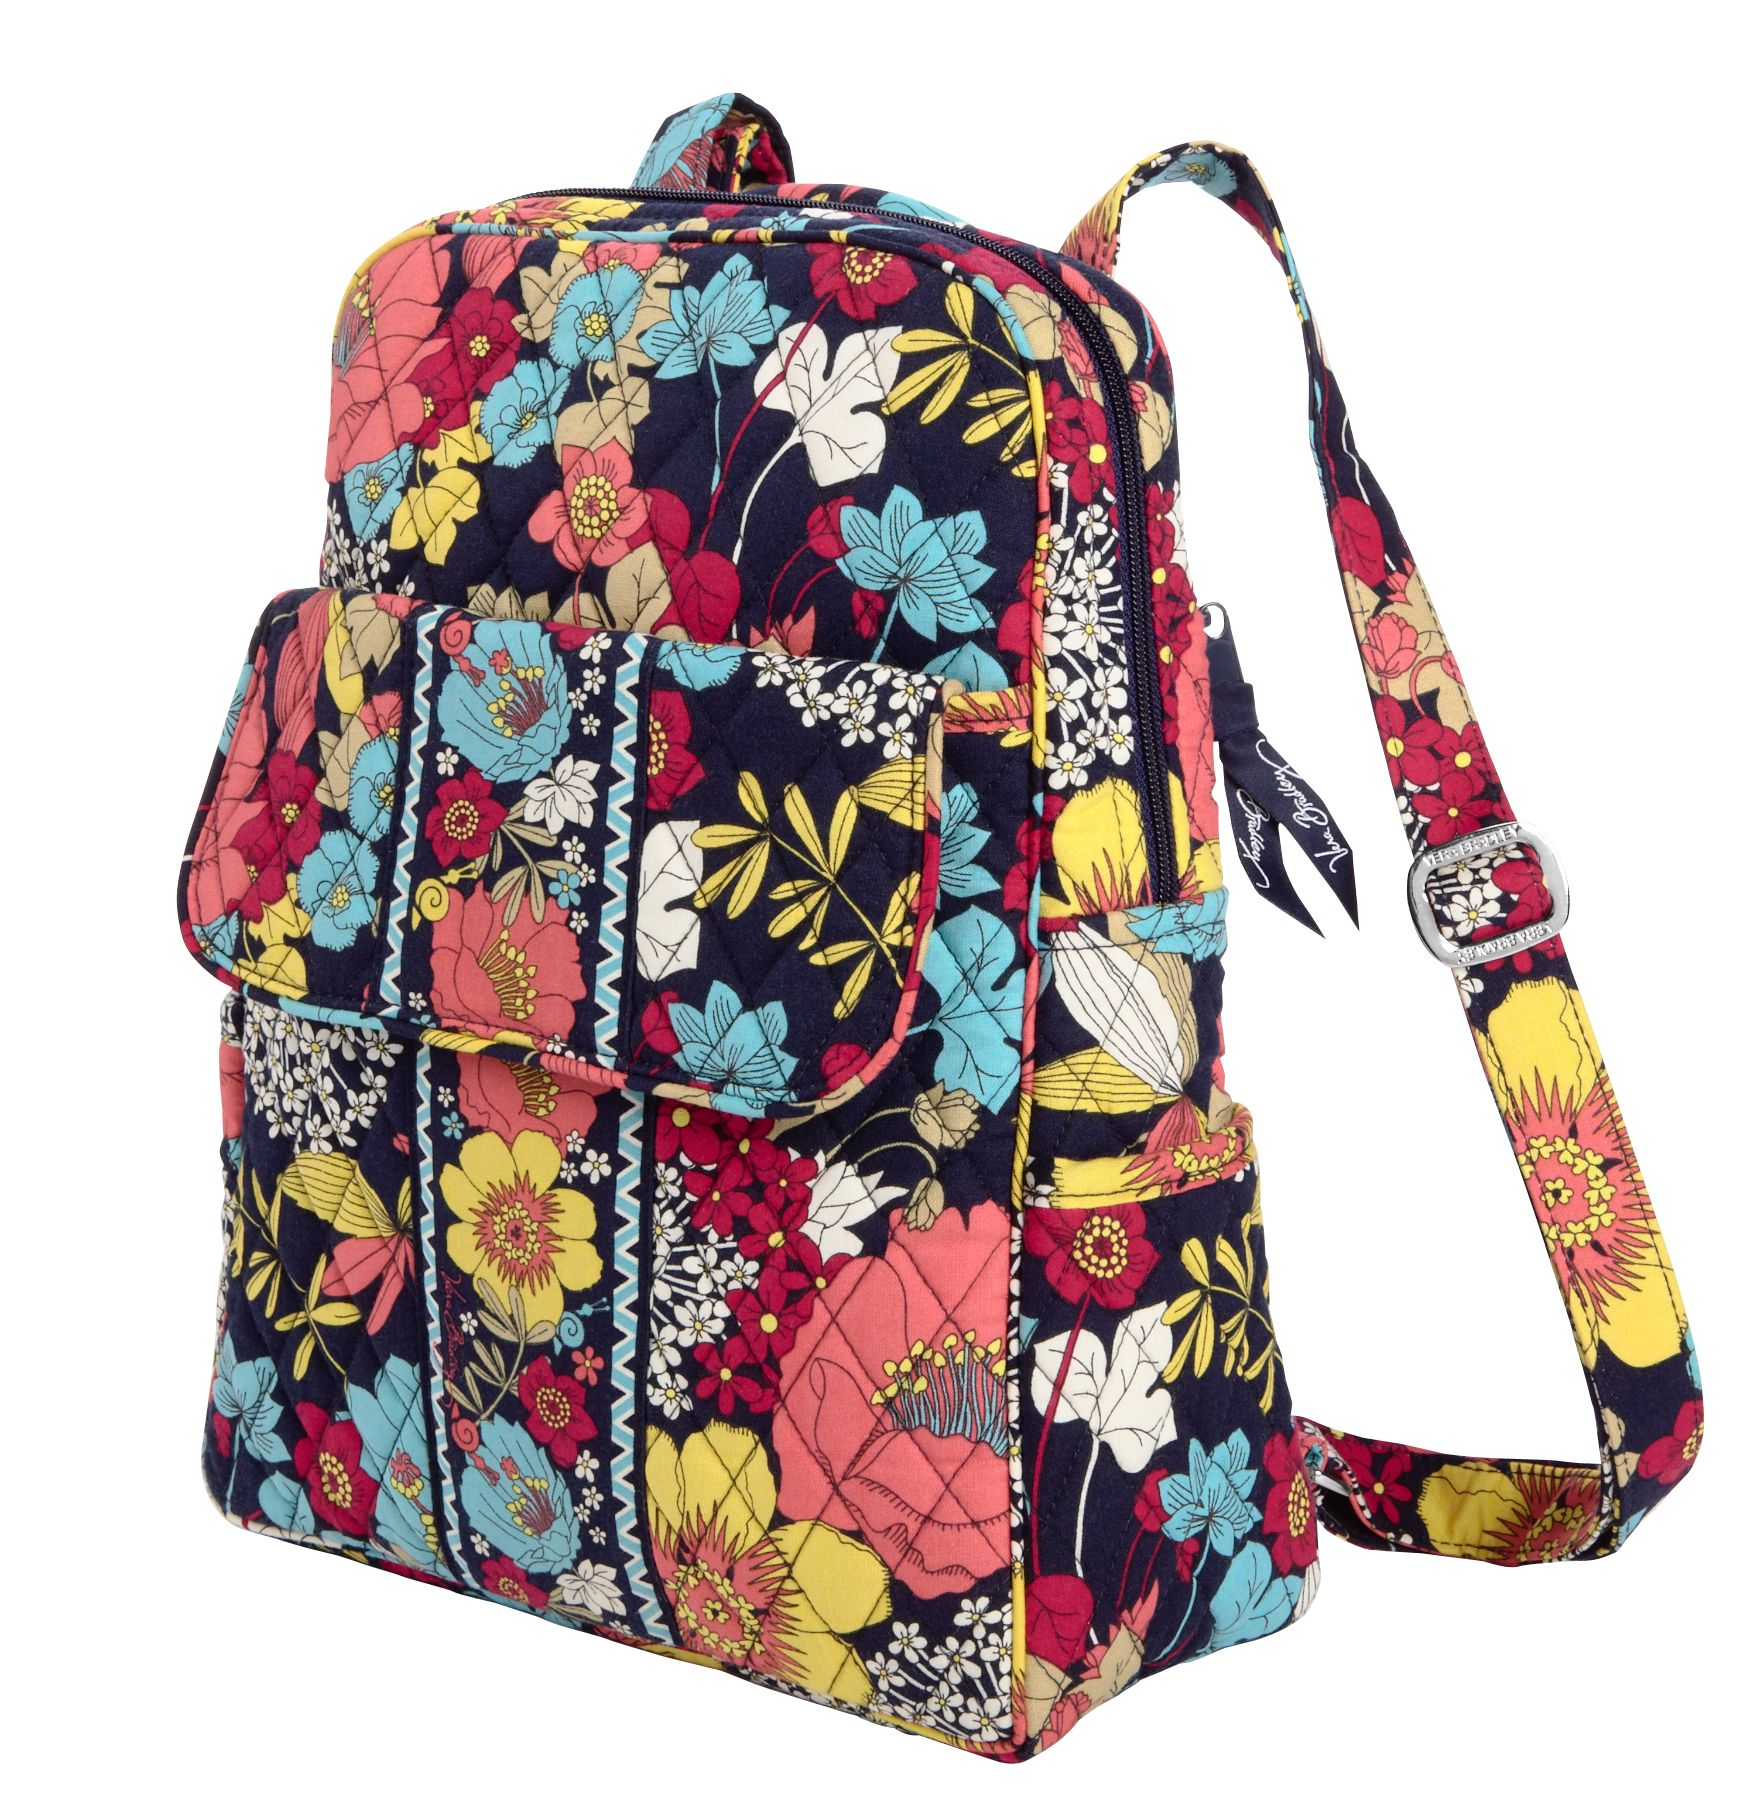 00aa37325515 Vera Bradley Backpack Purse Sale- Fenix Toulouse Handball